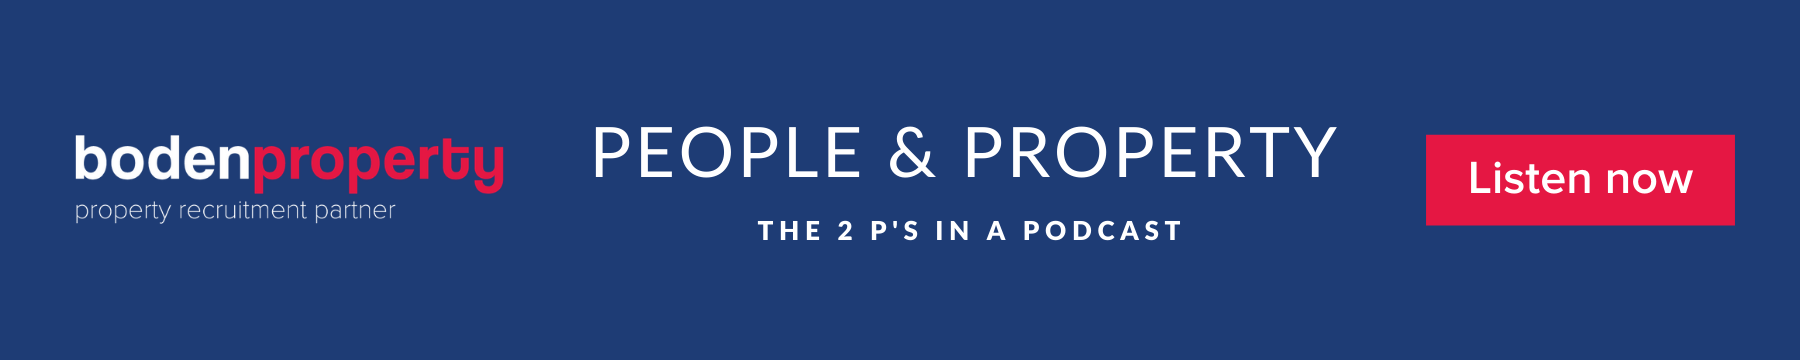 People & Property Podcast - Listen now